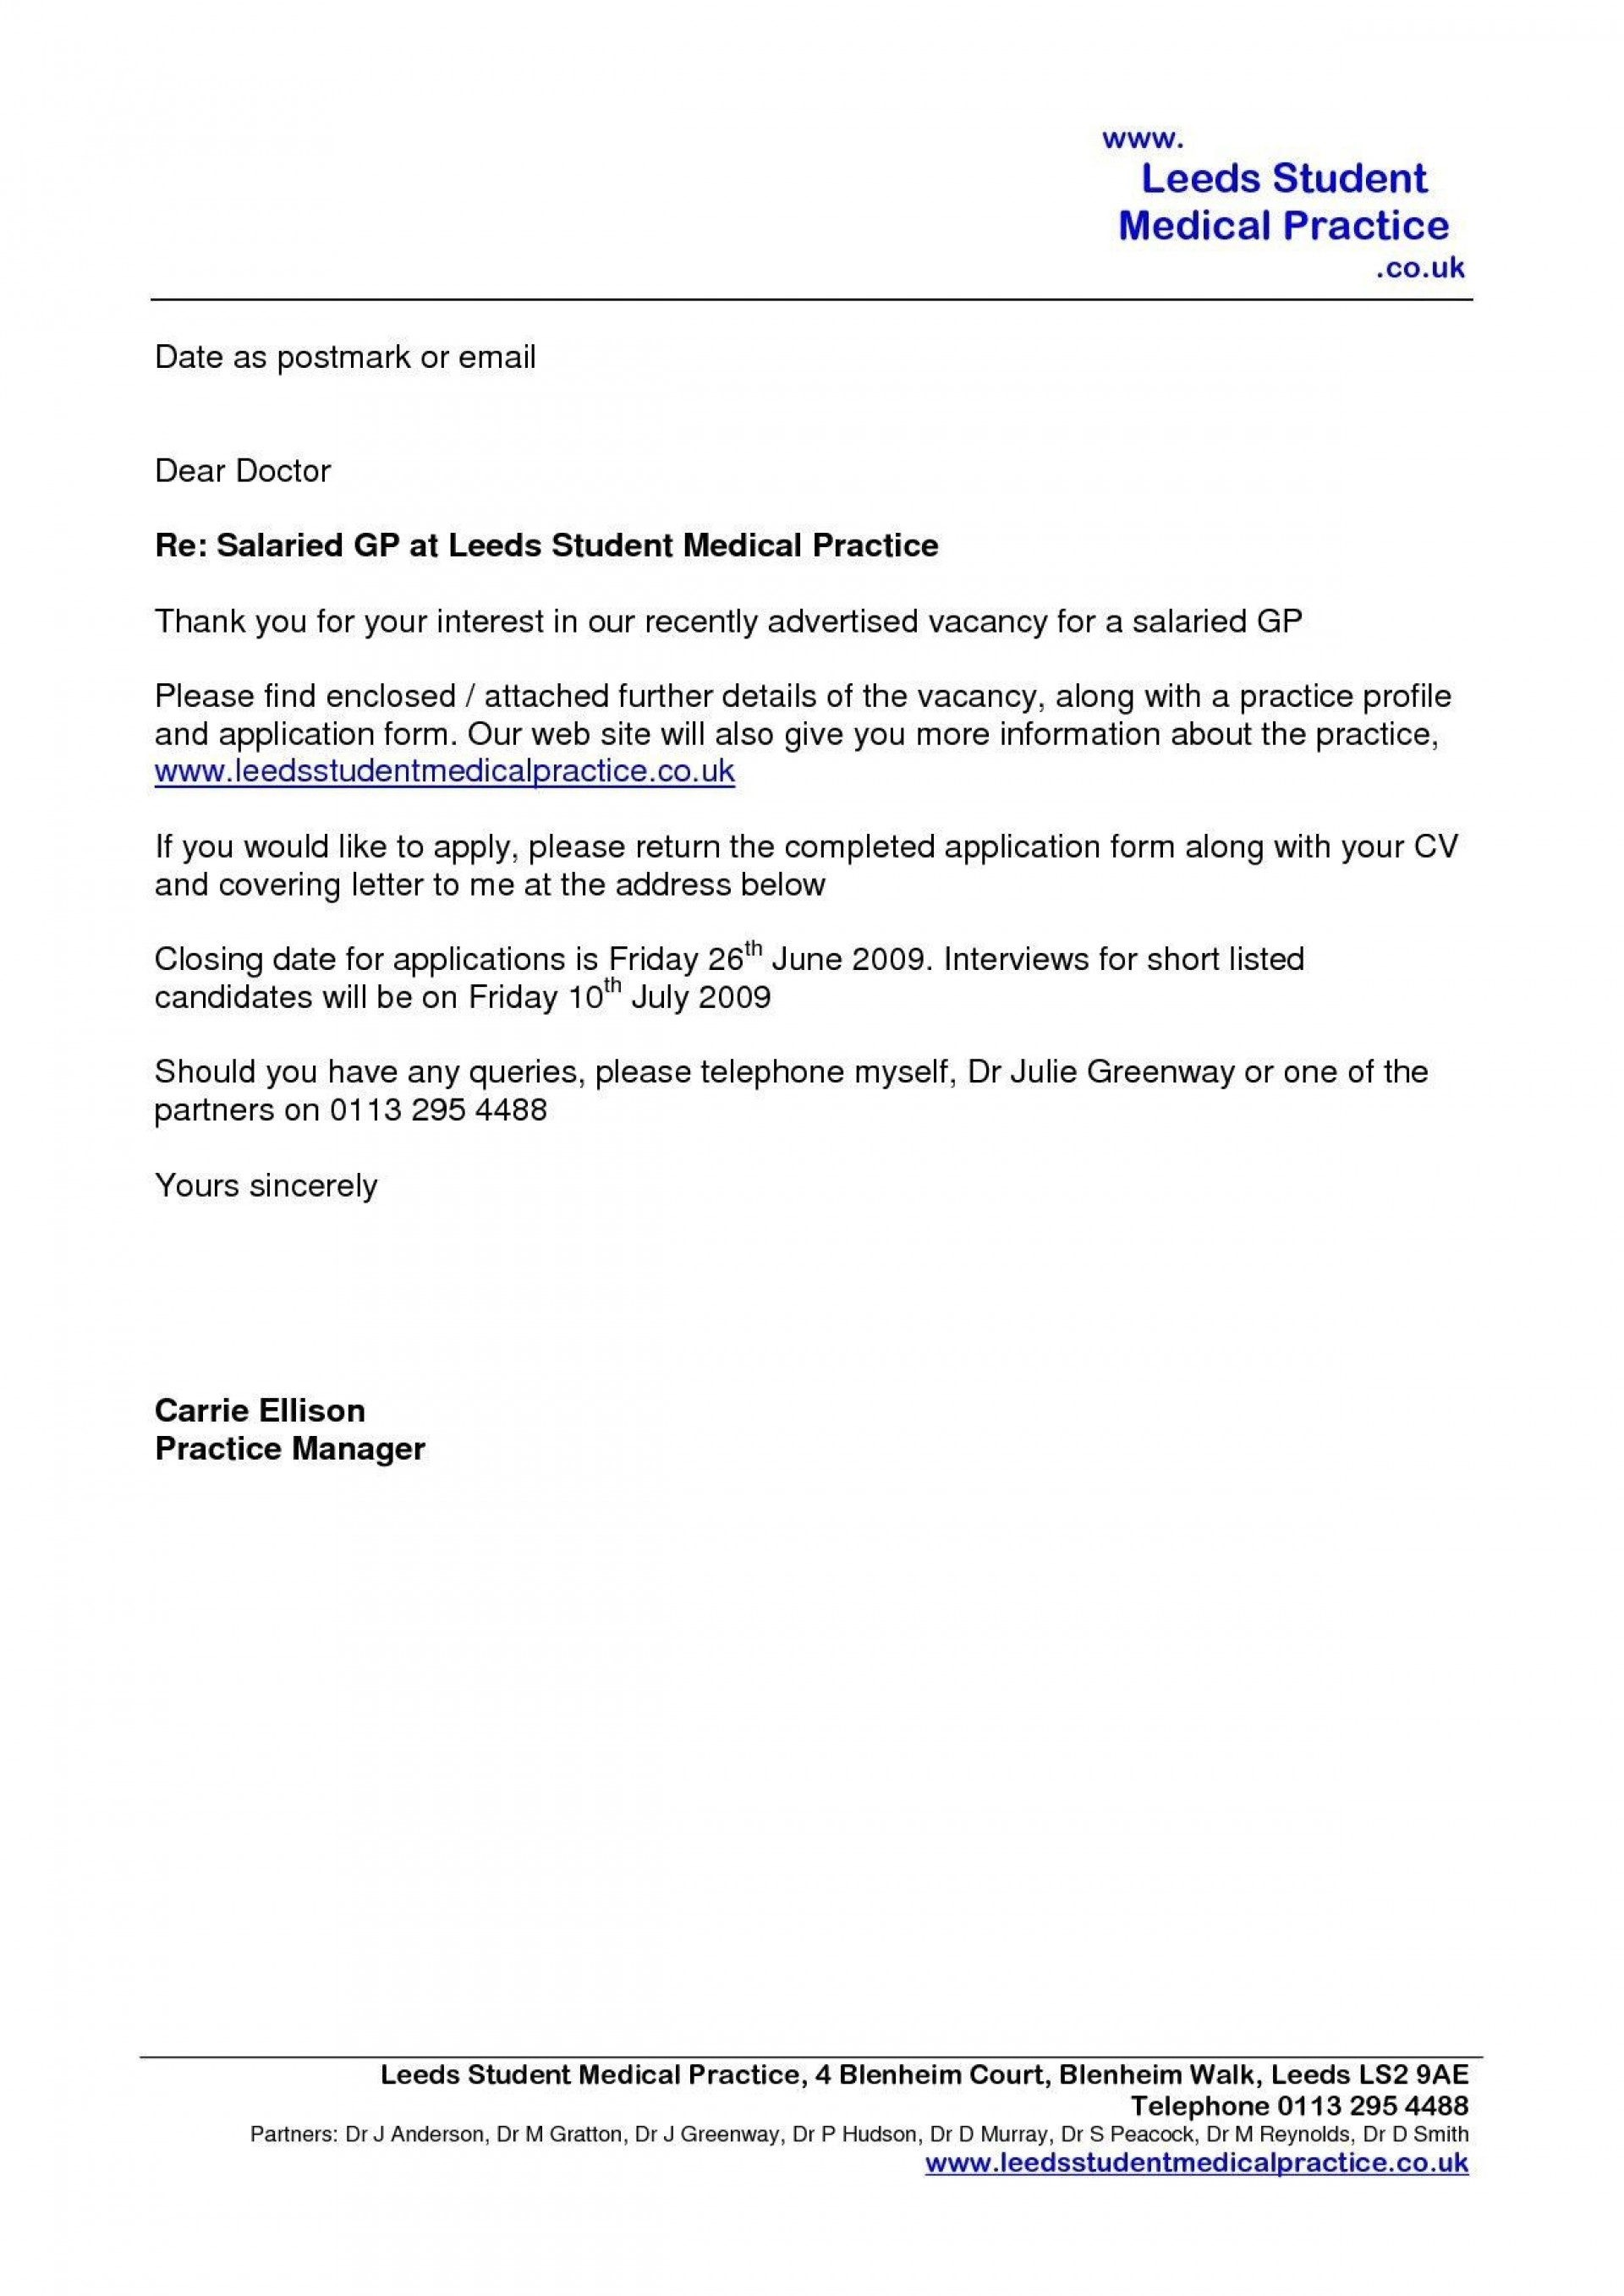 004 Singular Email Cover Letter Example Uk Concept 1920